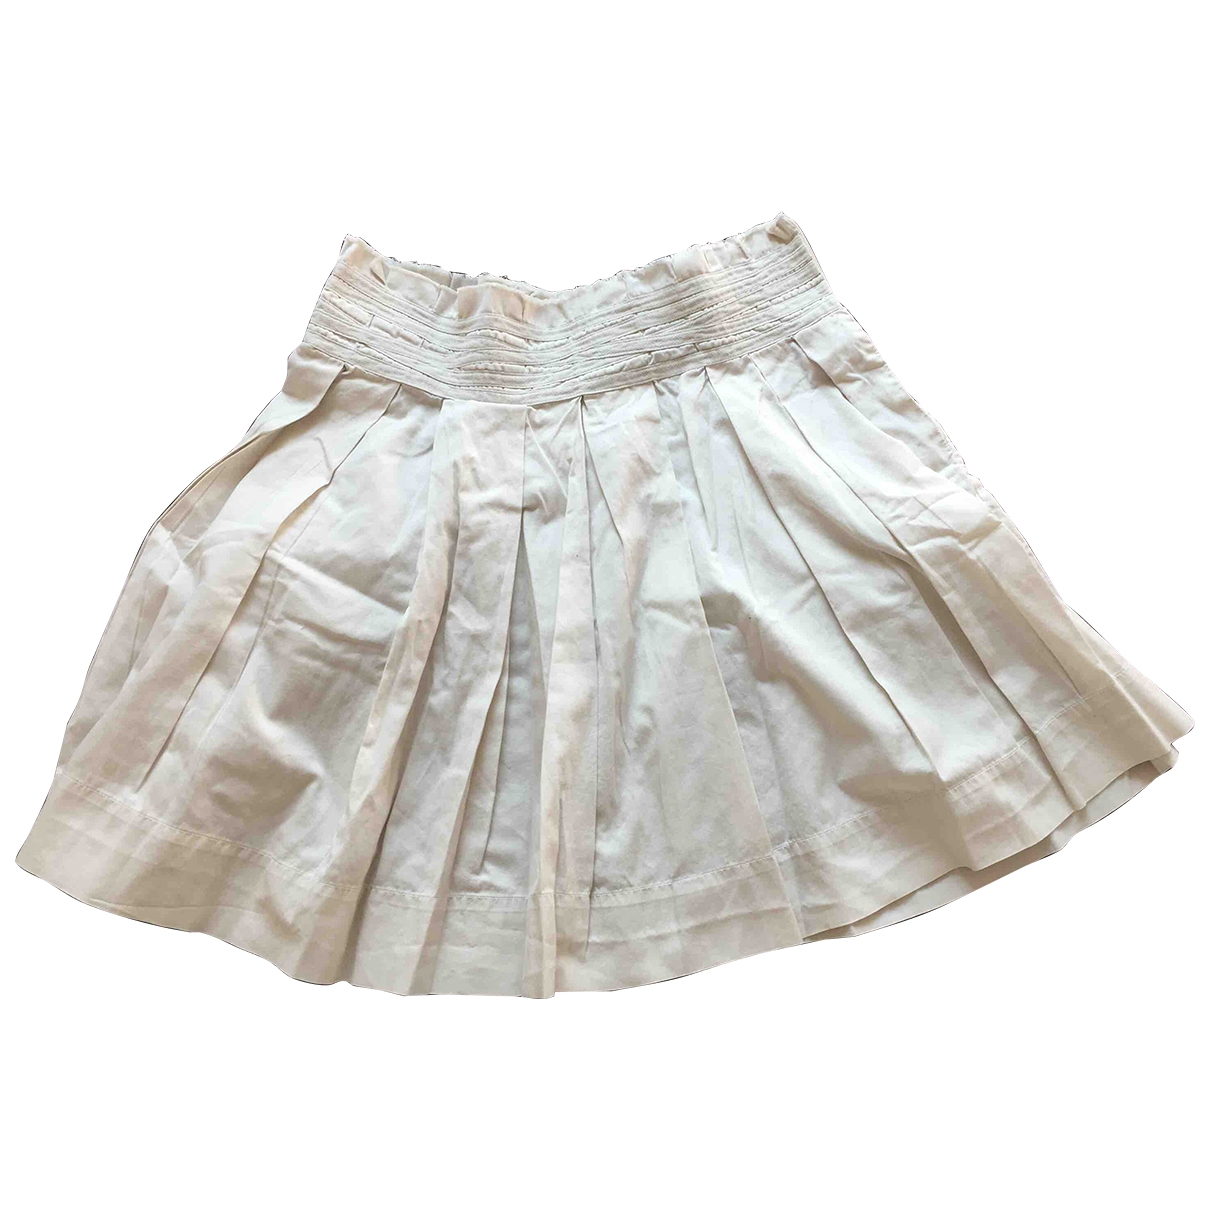 Jucca \N White Cotton skirt for Women 42 IT